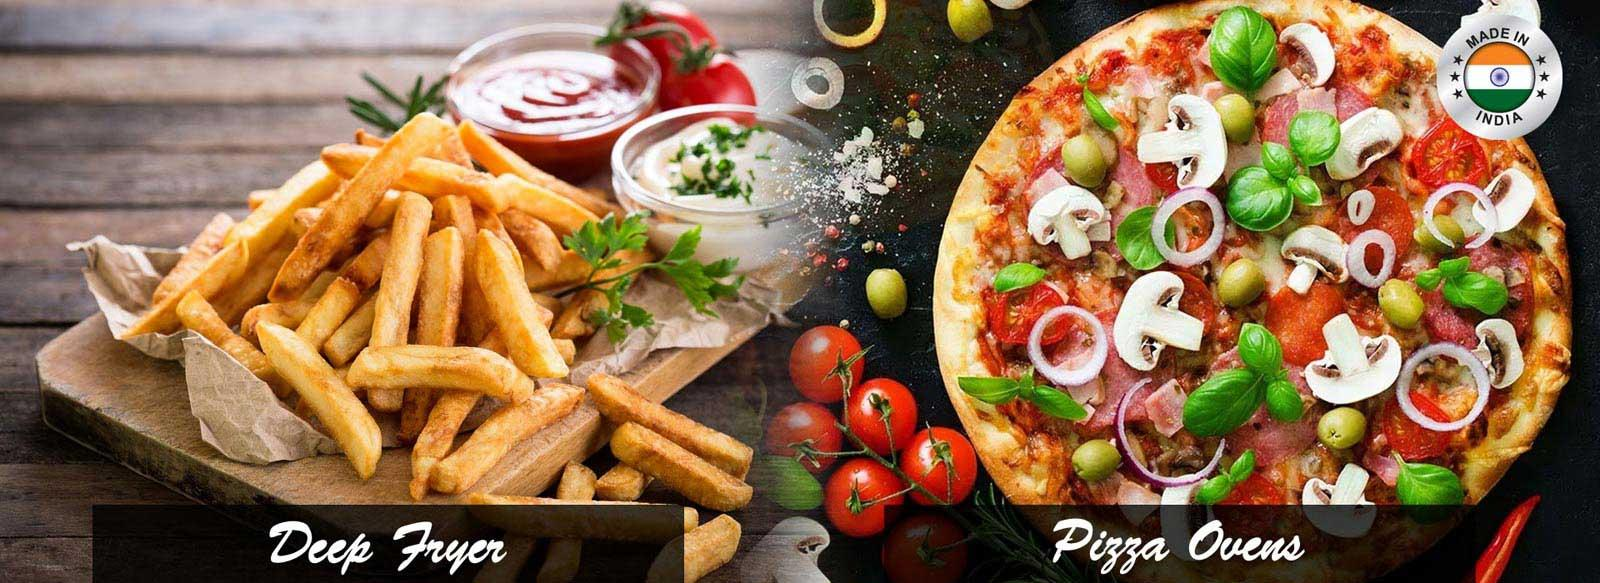 Deep Fryer and Pizza Ovens